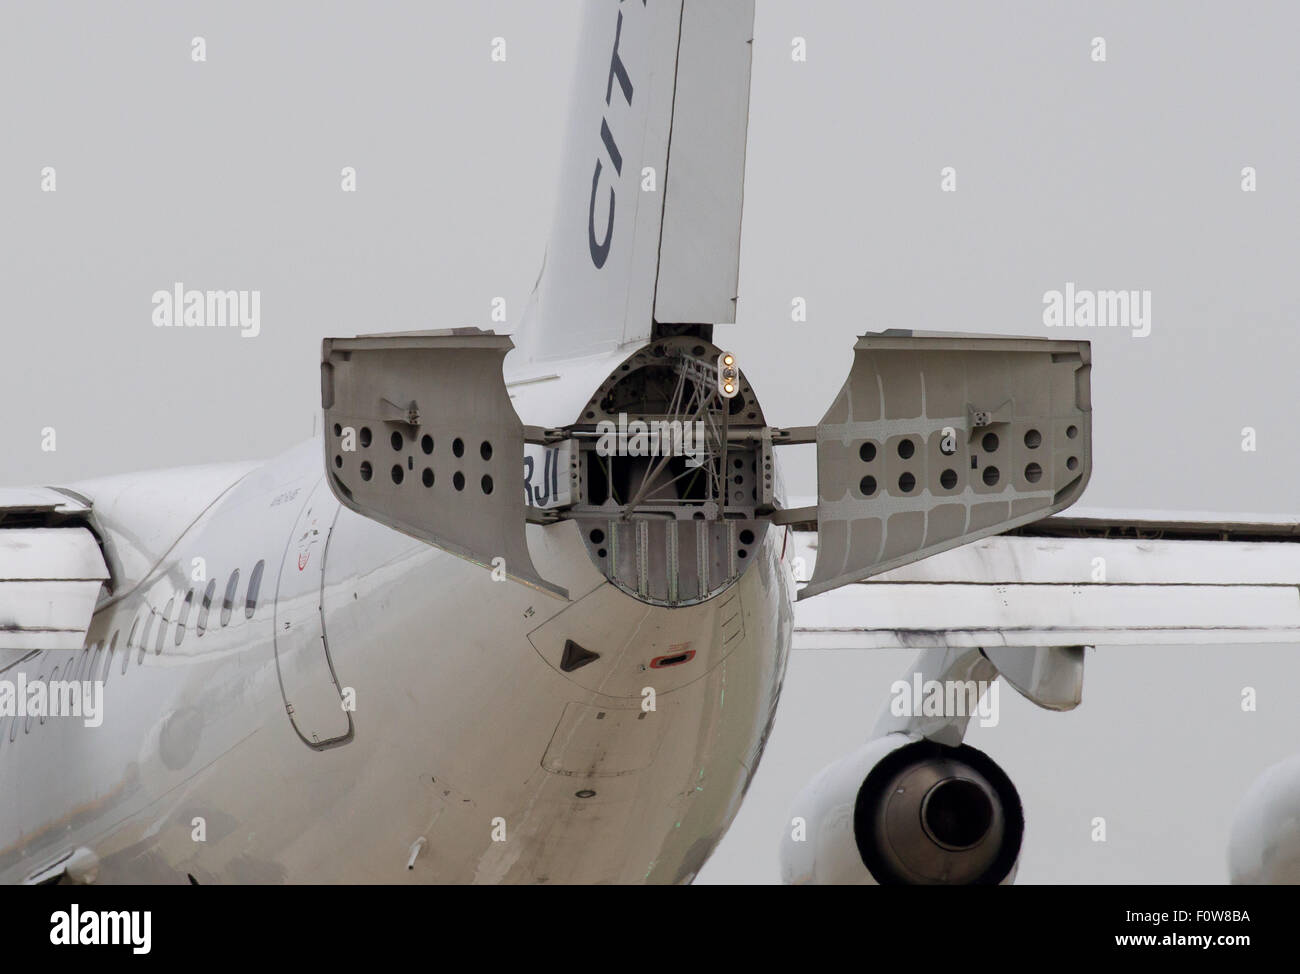 A CityJet Avro RJ85 registration EI-RJI deploys its tail air brake as it comes in to land at London City Airport - Stock Image